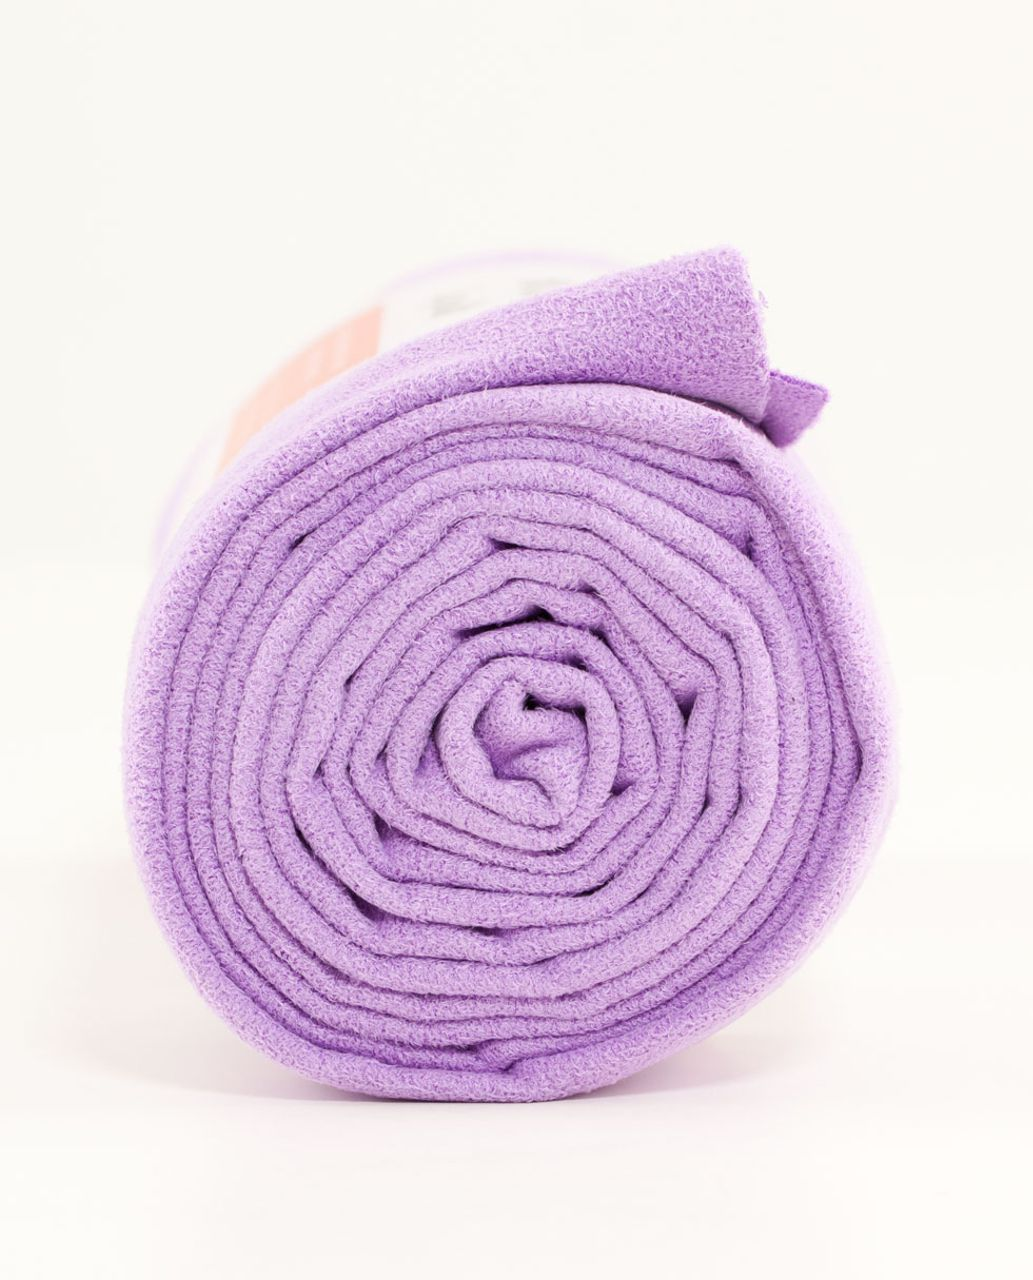 Lululemon The Towel - Groovy Grape